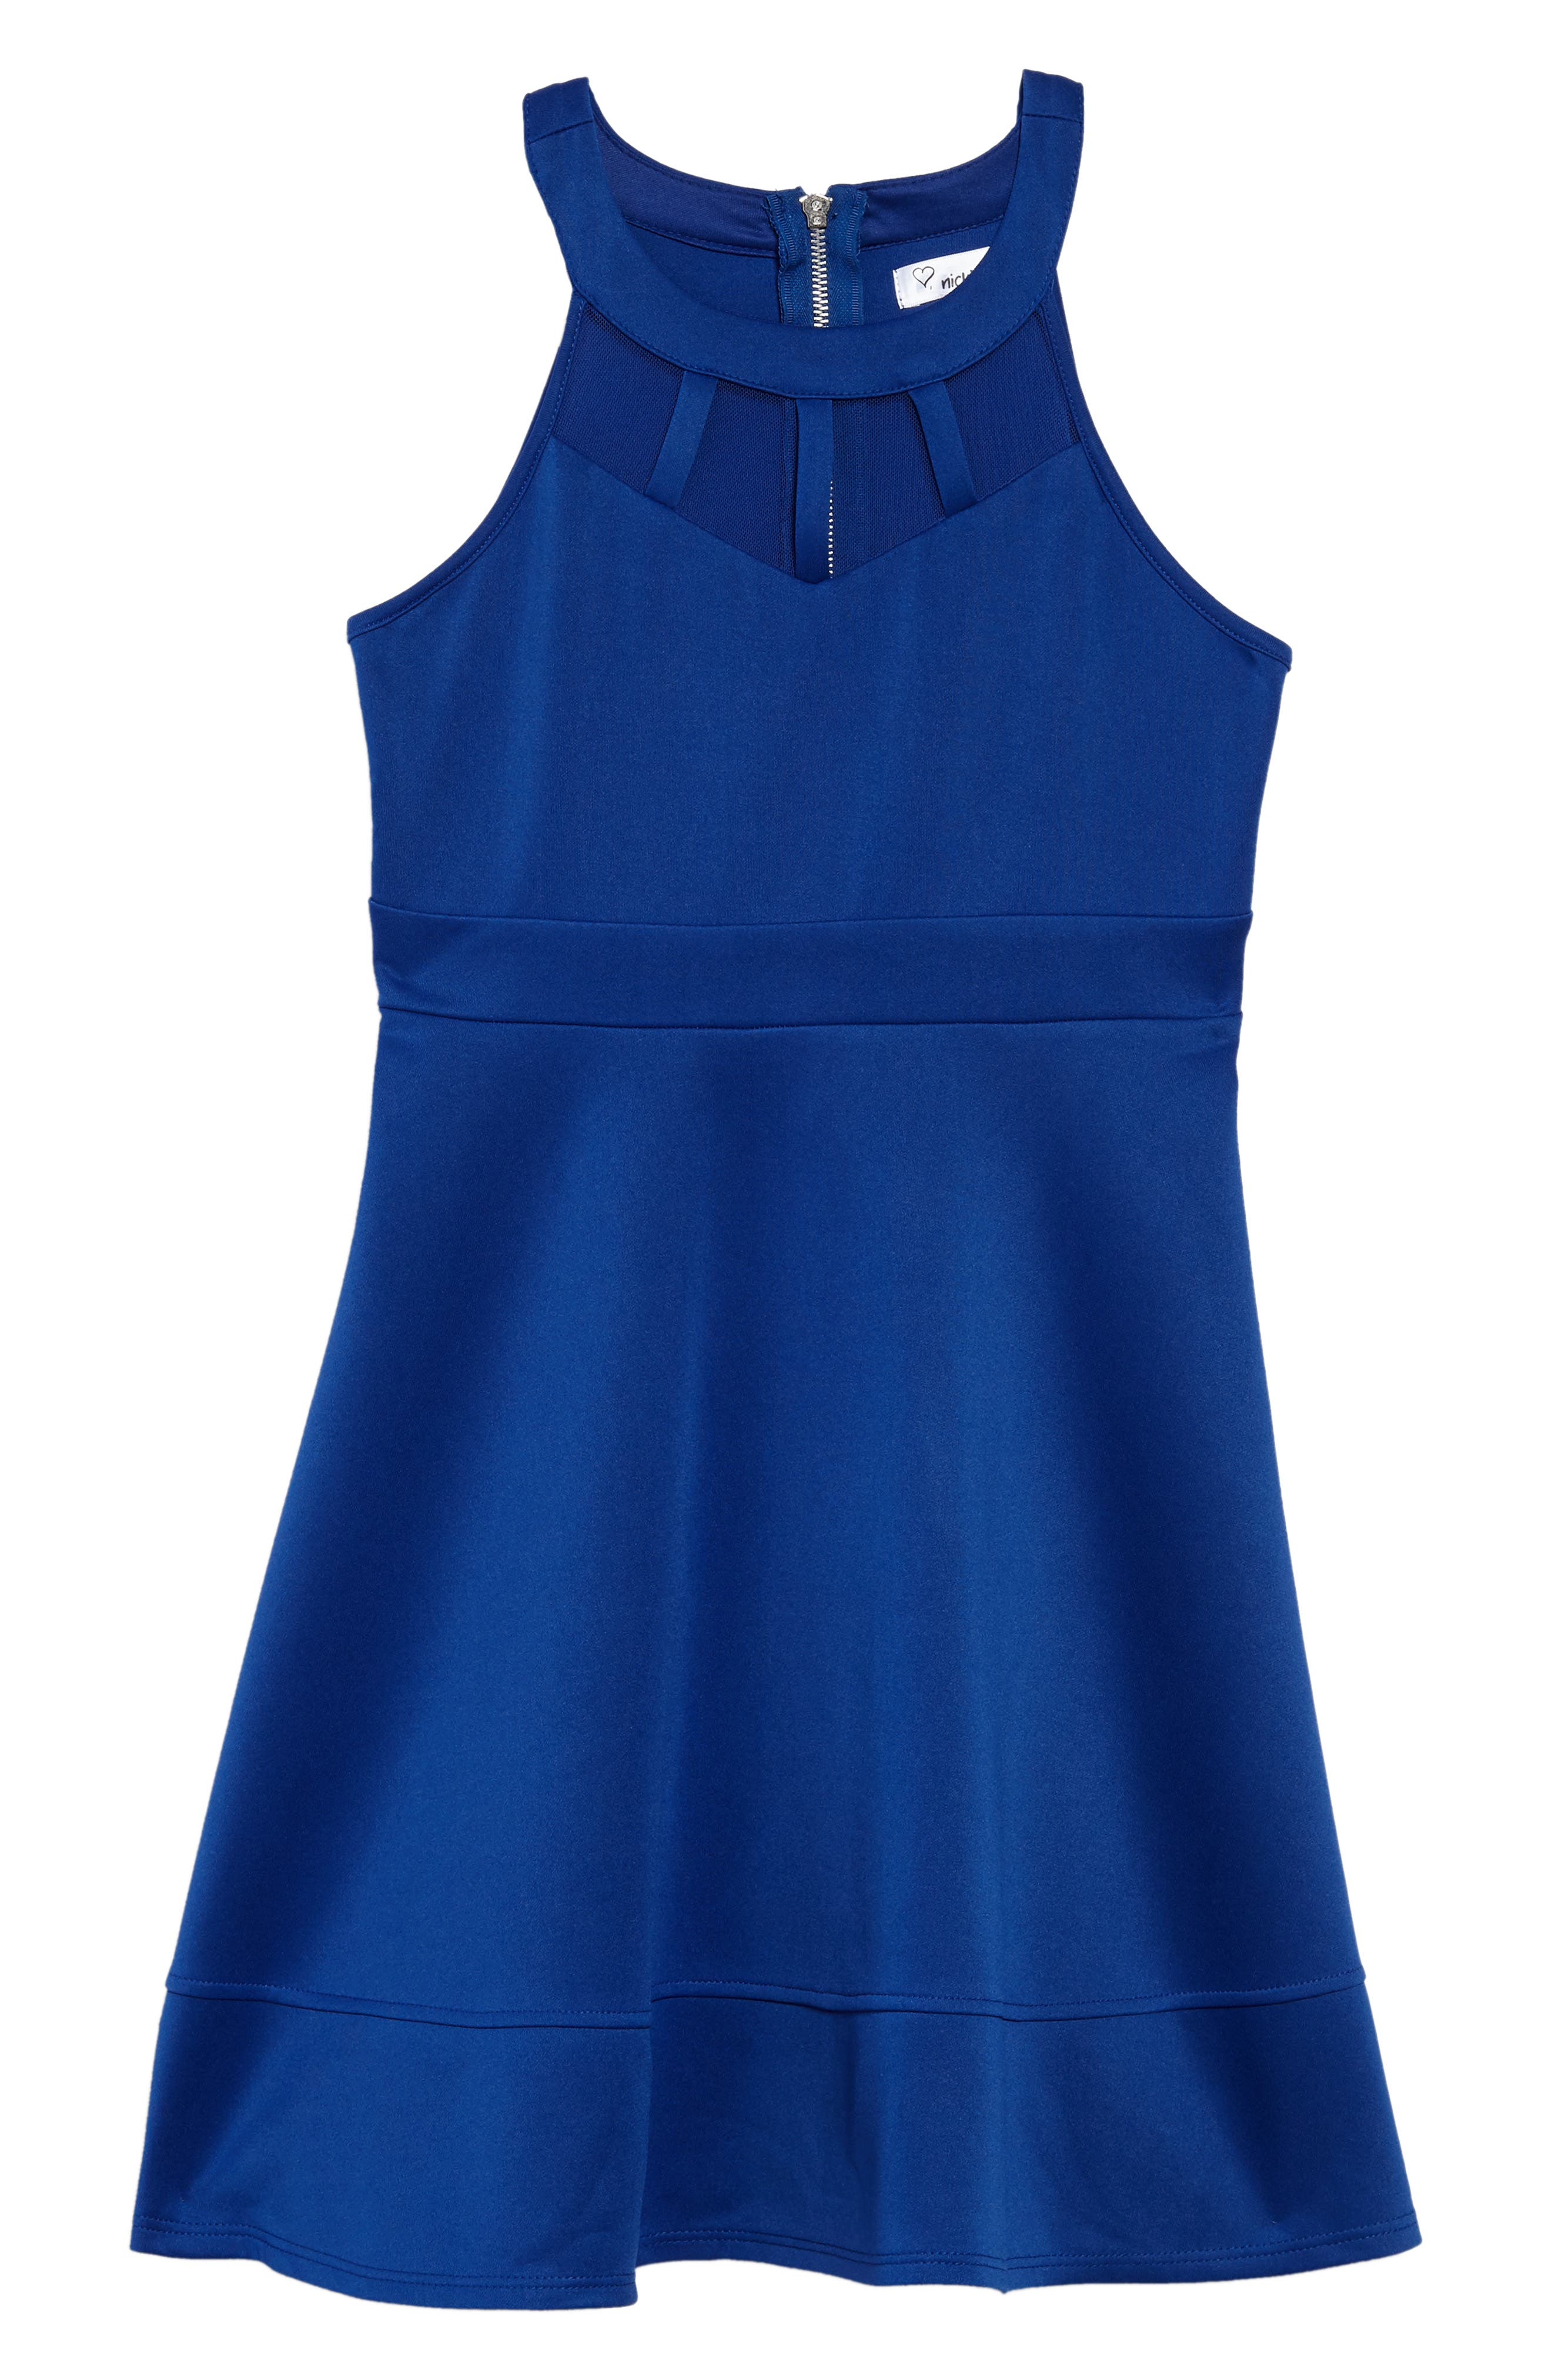 Illusion Neck Skater Dress,                             Main thumbnail 1, color,                             Royal